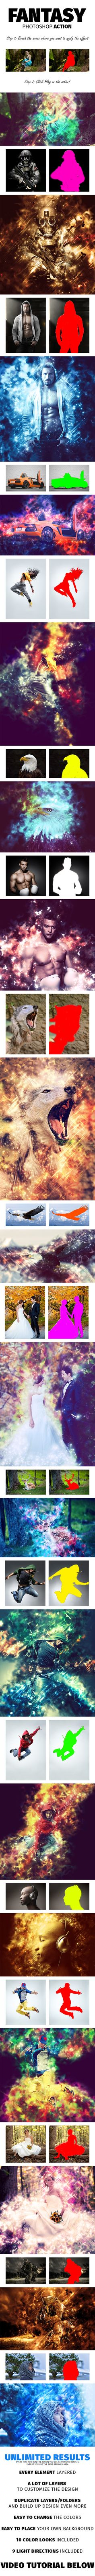 Fantasy Photoshop Action #photoeffect Download: http://graphicriver.net/item/fantasy-photoshop-action/10707714?ref=ksioks